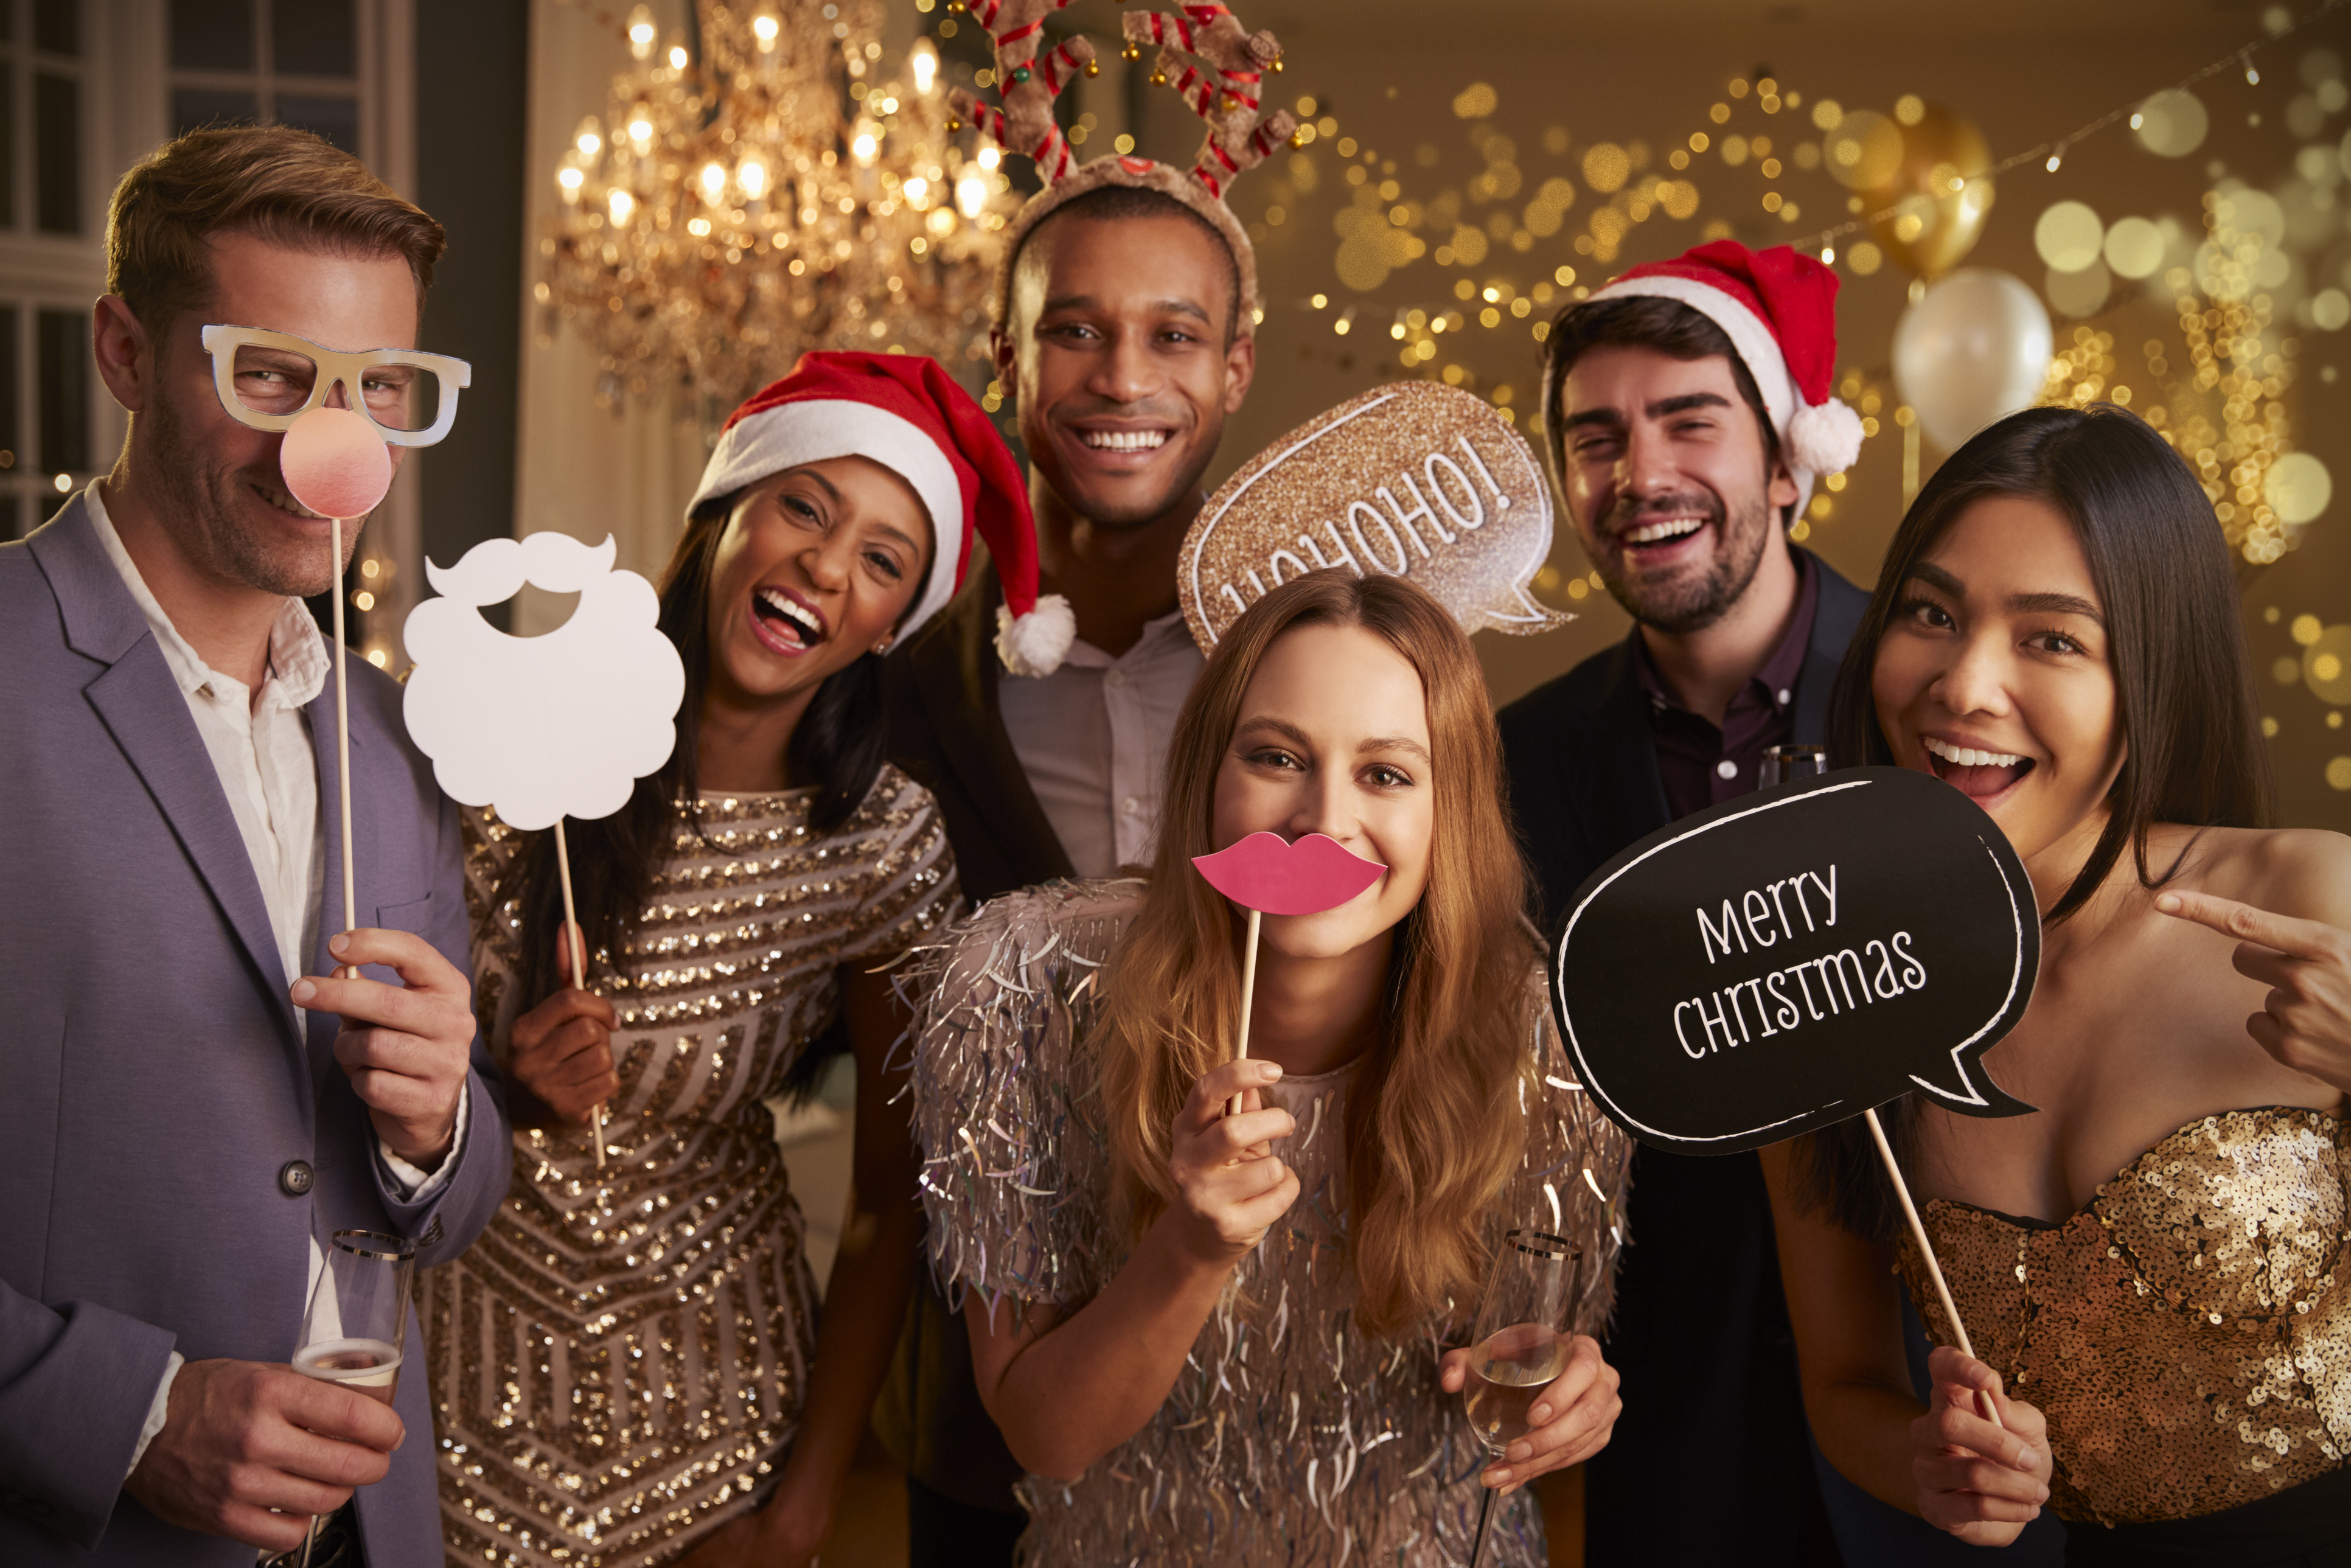 Friends gather for the Christmas party (Thinkstock/PA)